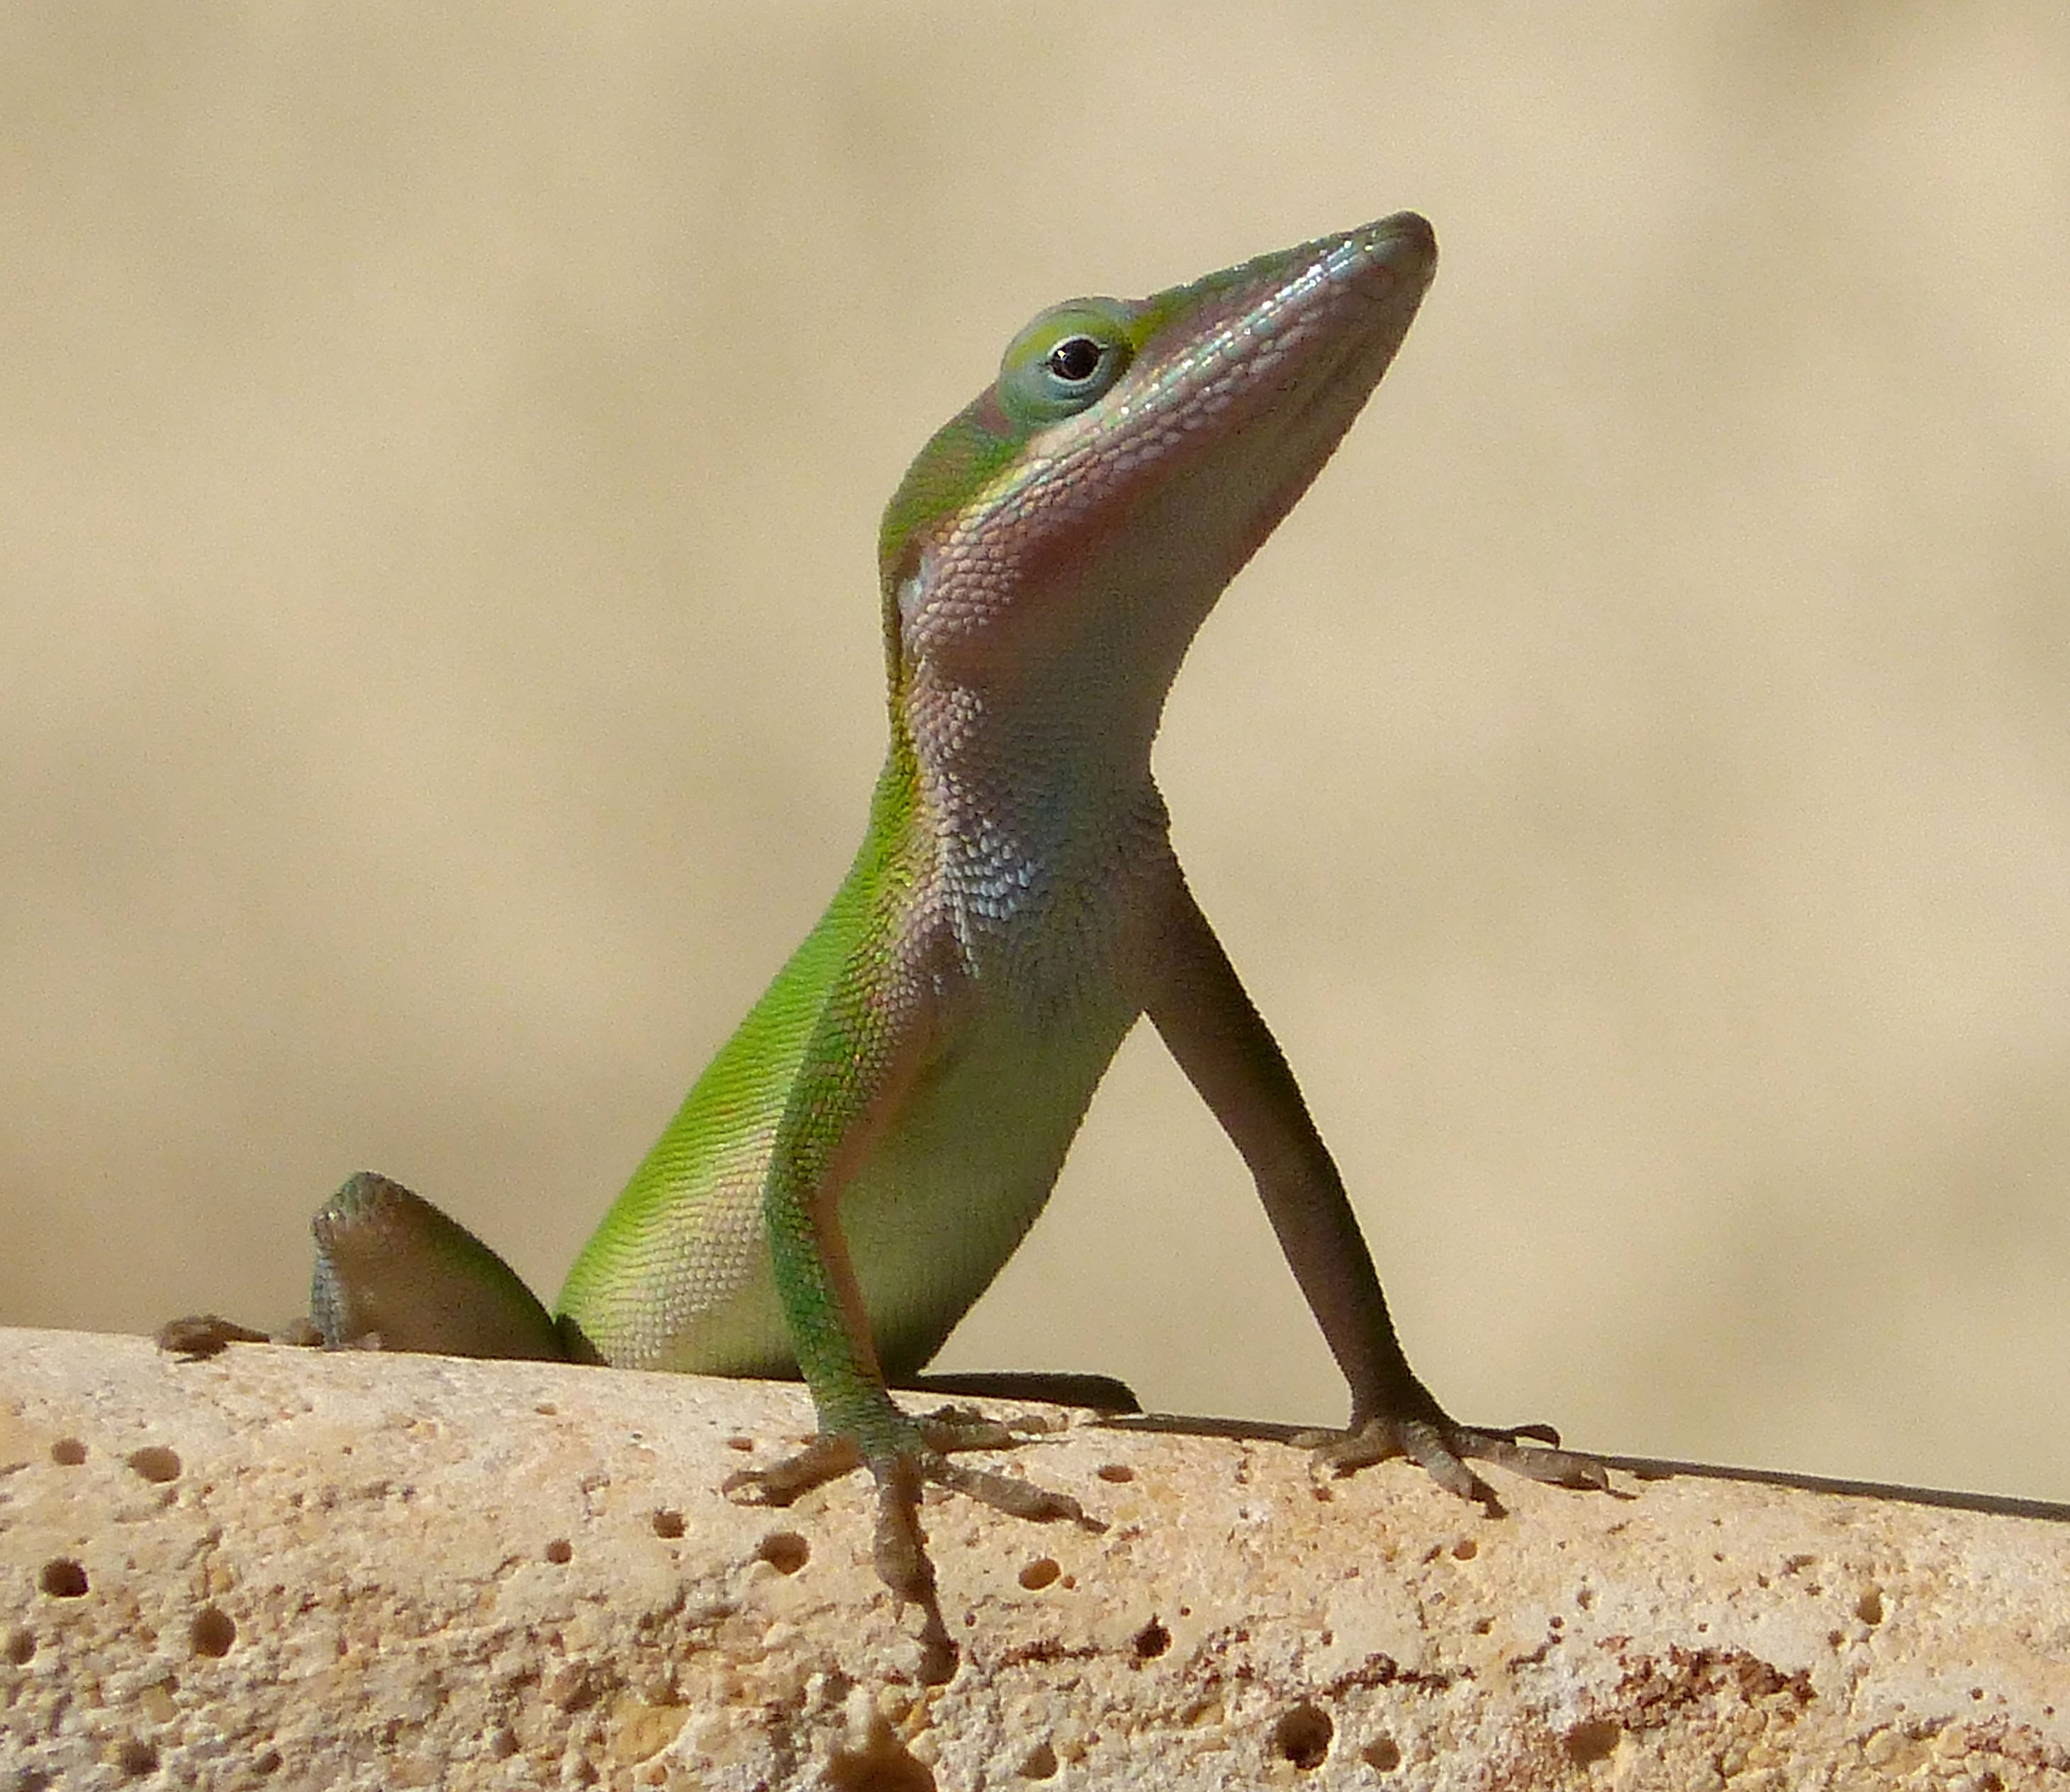 Anole svg #11, Download drawings